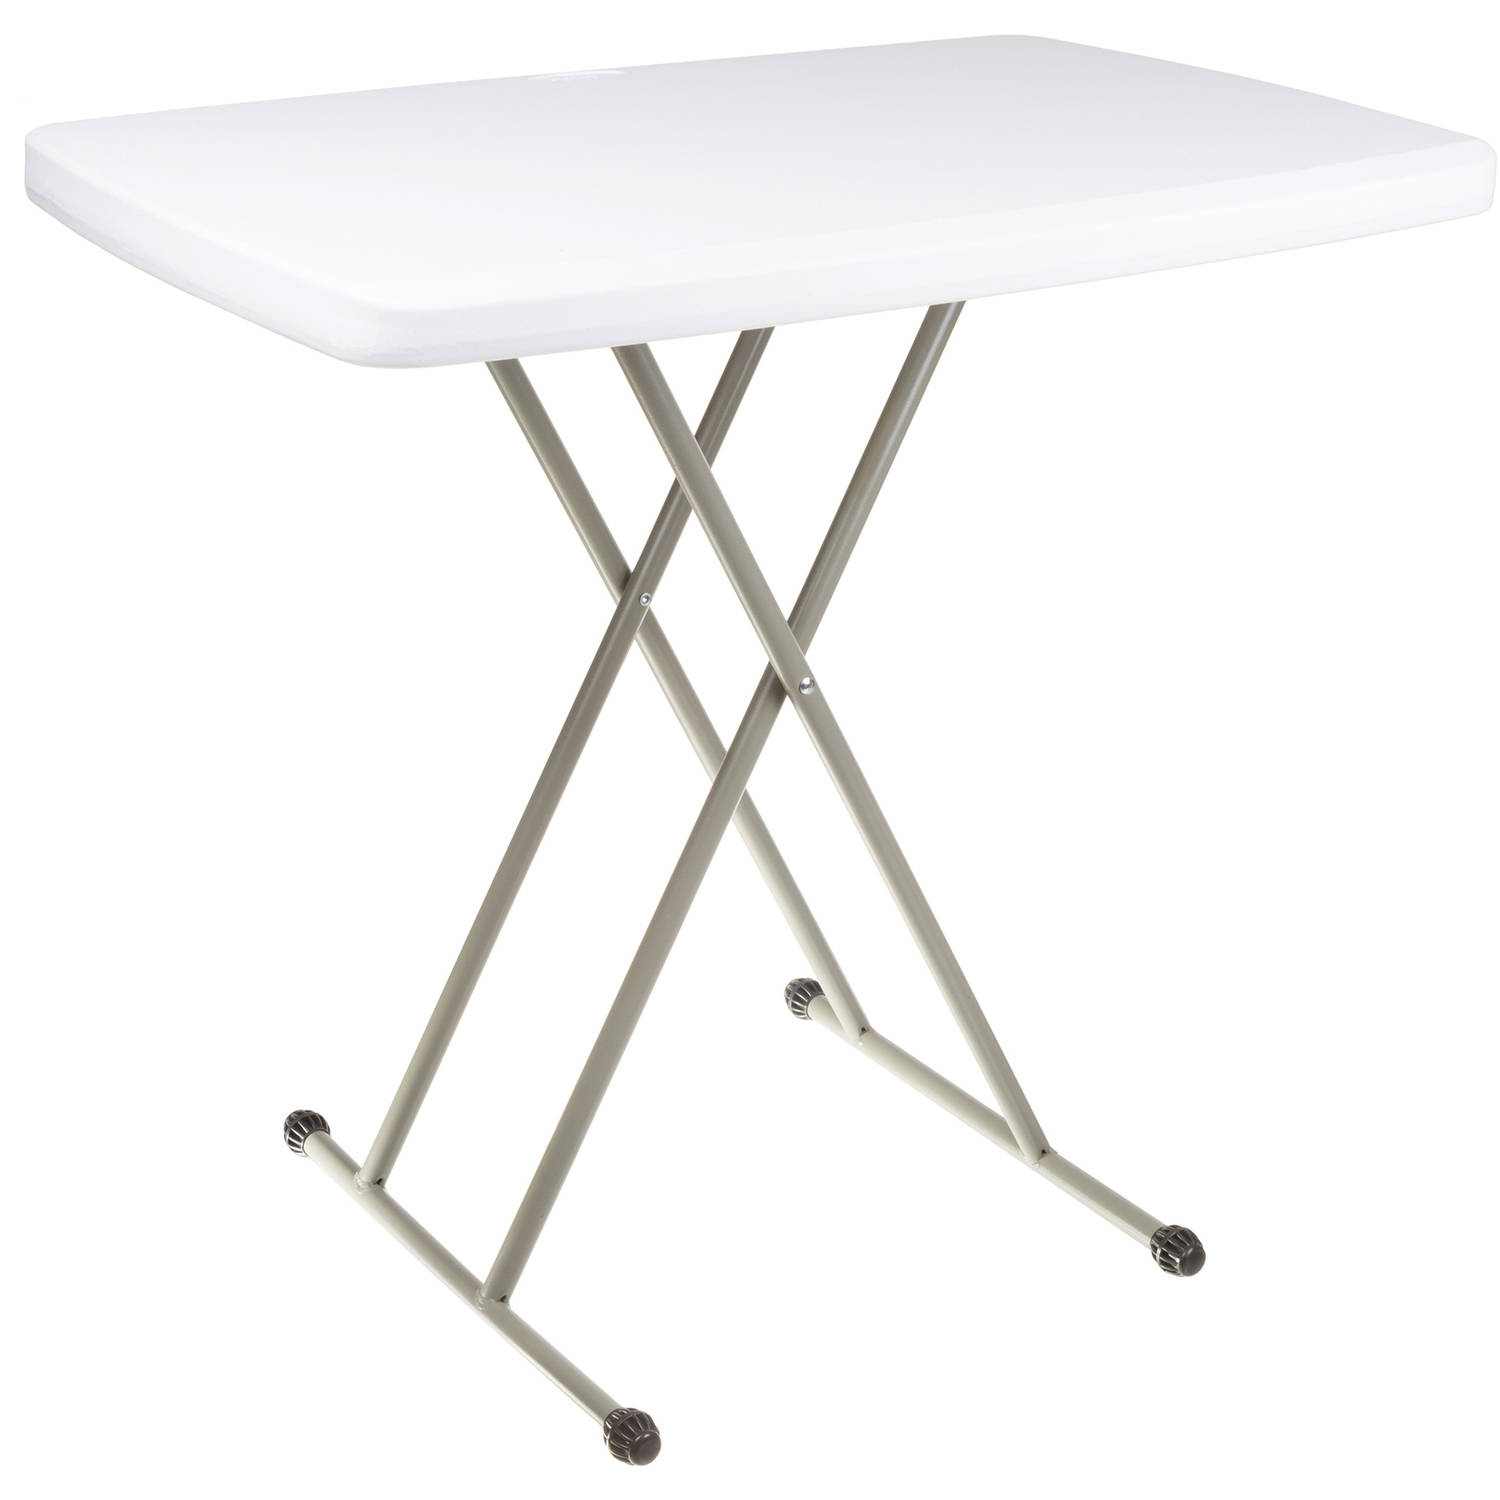 Excellent folding table, foldable table and tv tray by everyday home, 30 x 20 niolhjq